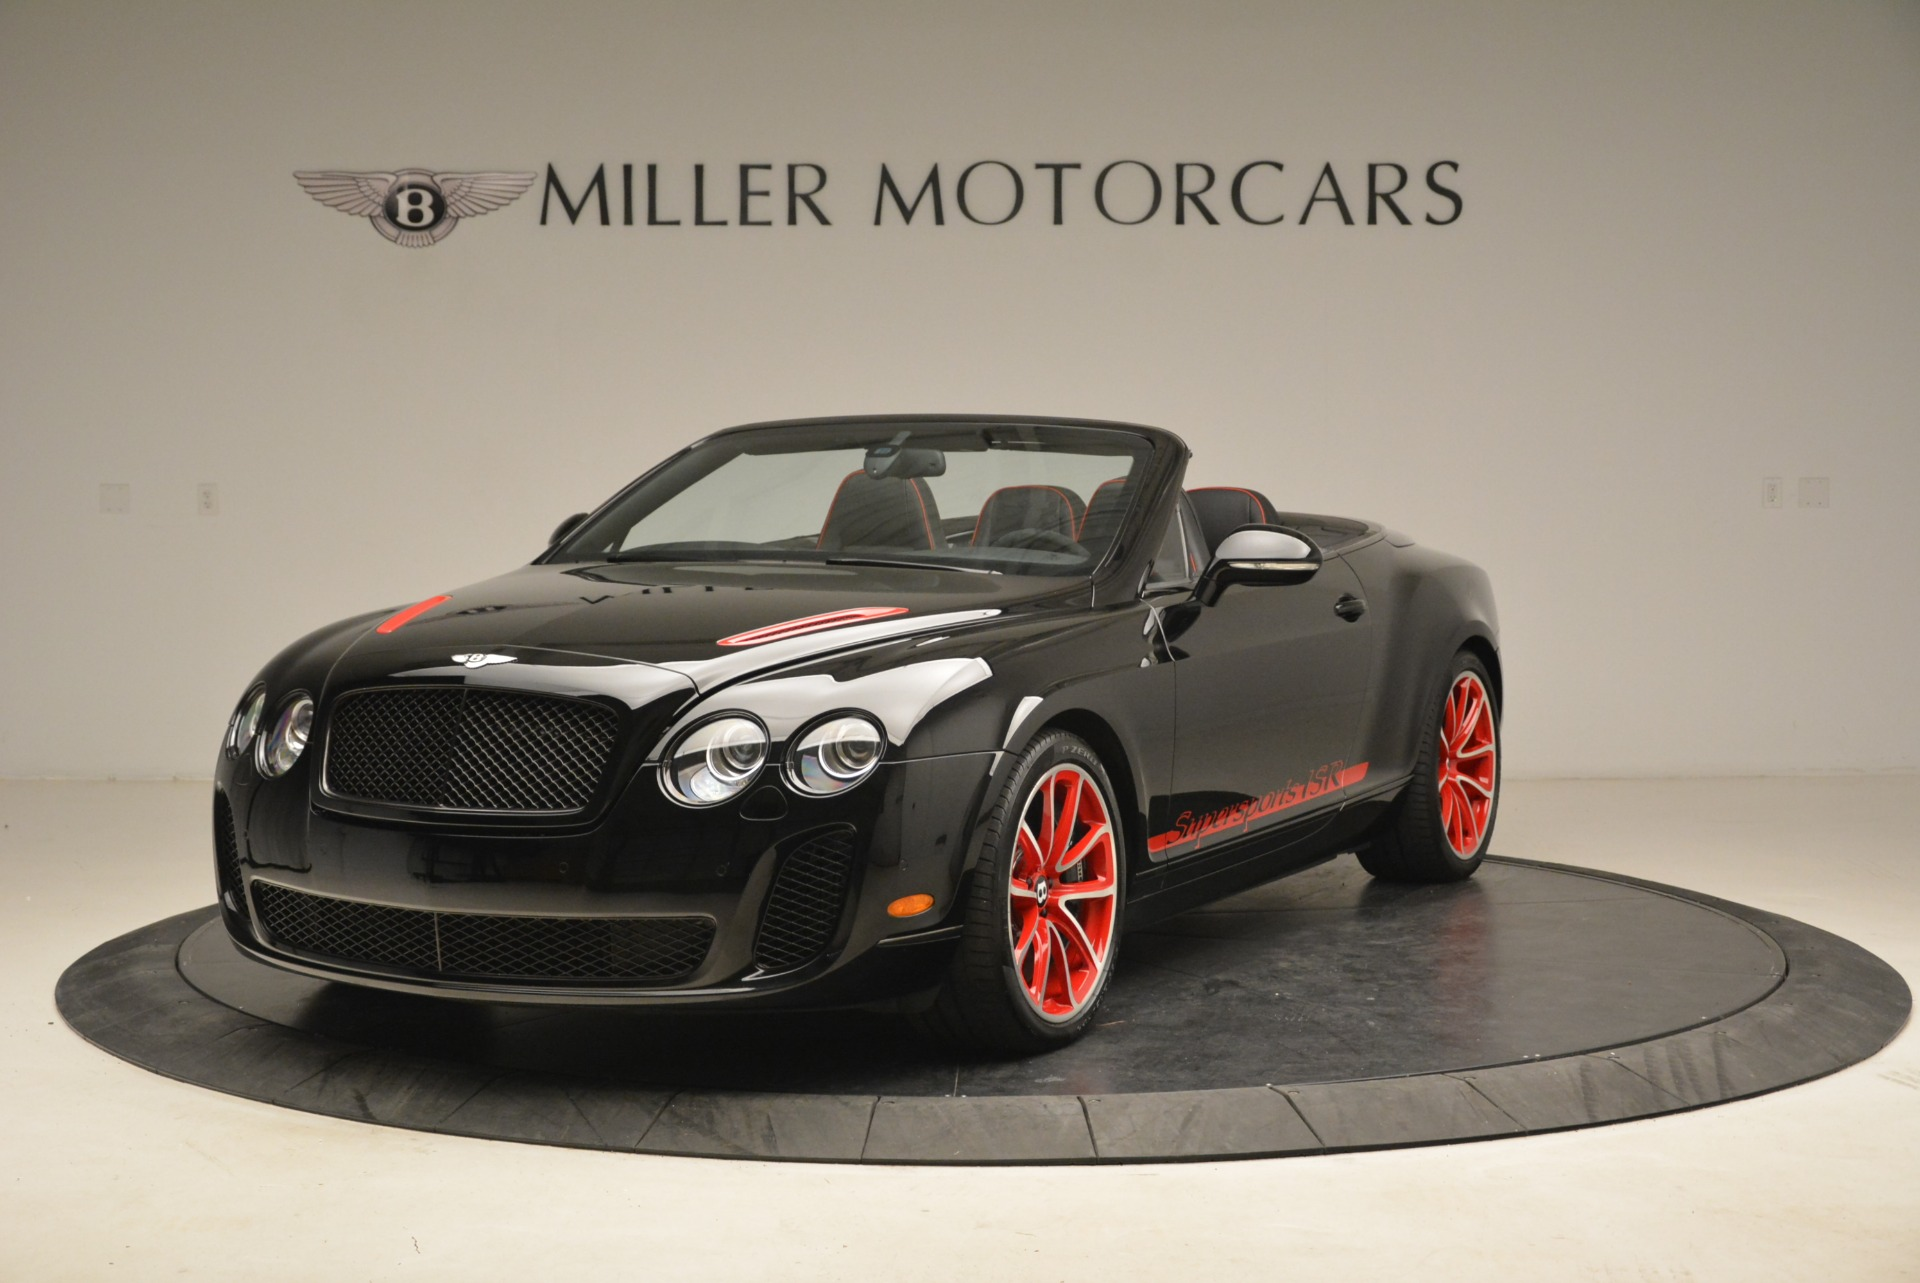 Used 2013 Bentley Continental GT Supersports Convertible ISR for sale Sold at Aston Martin of Greenwich in Greenwich CT 06830 1